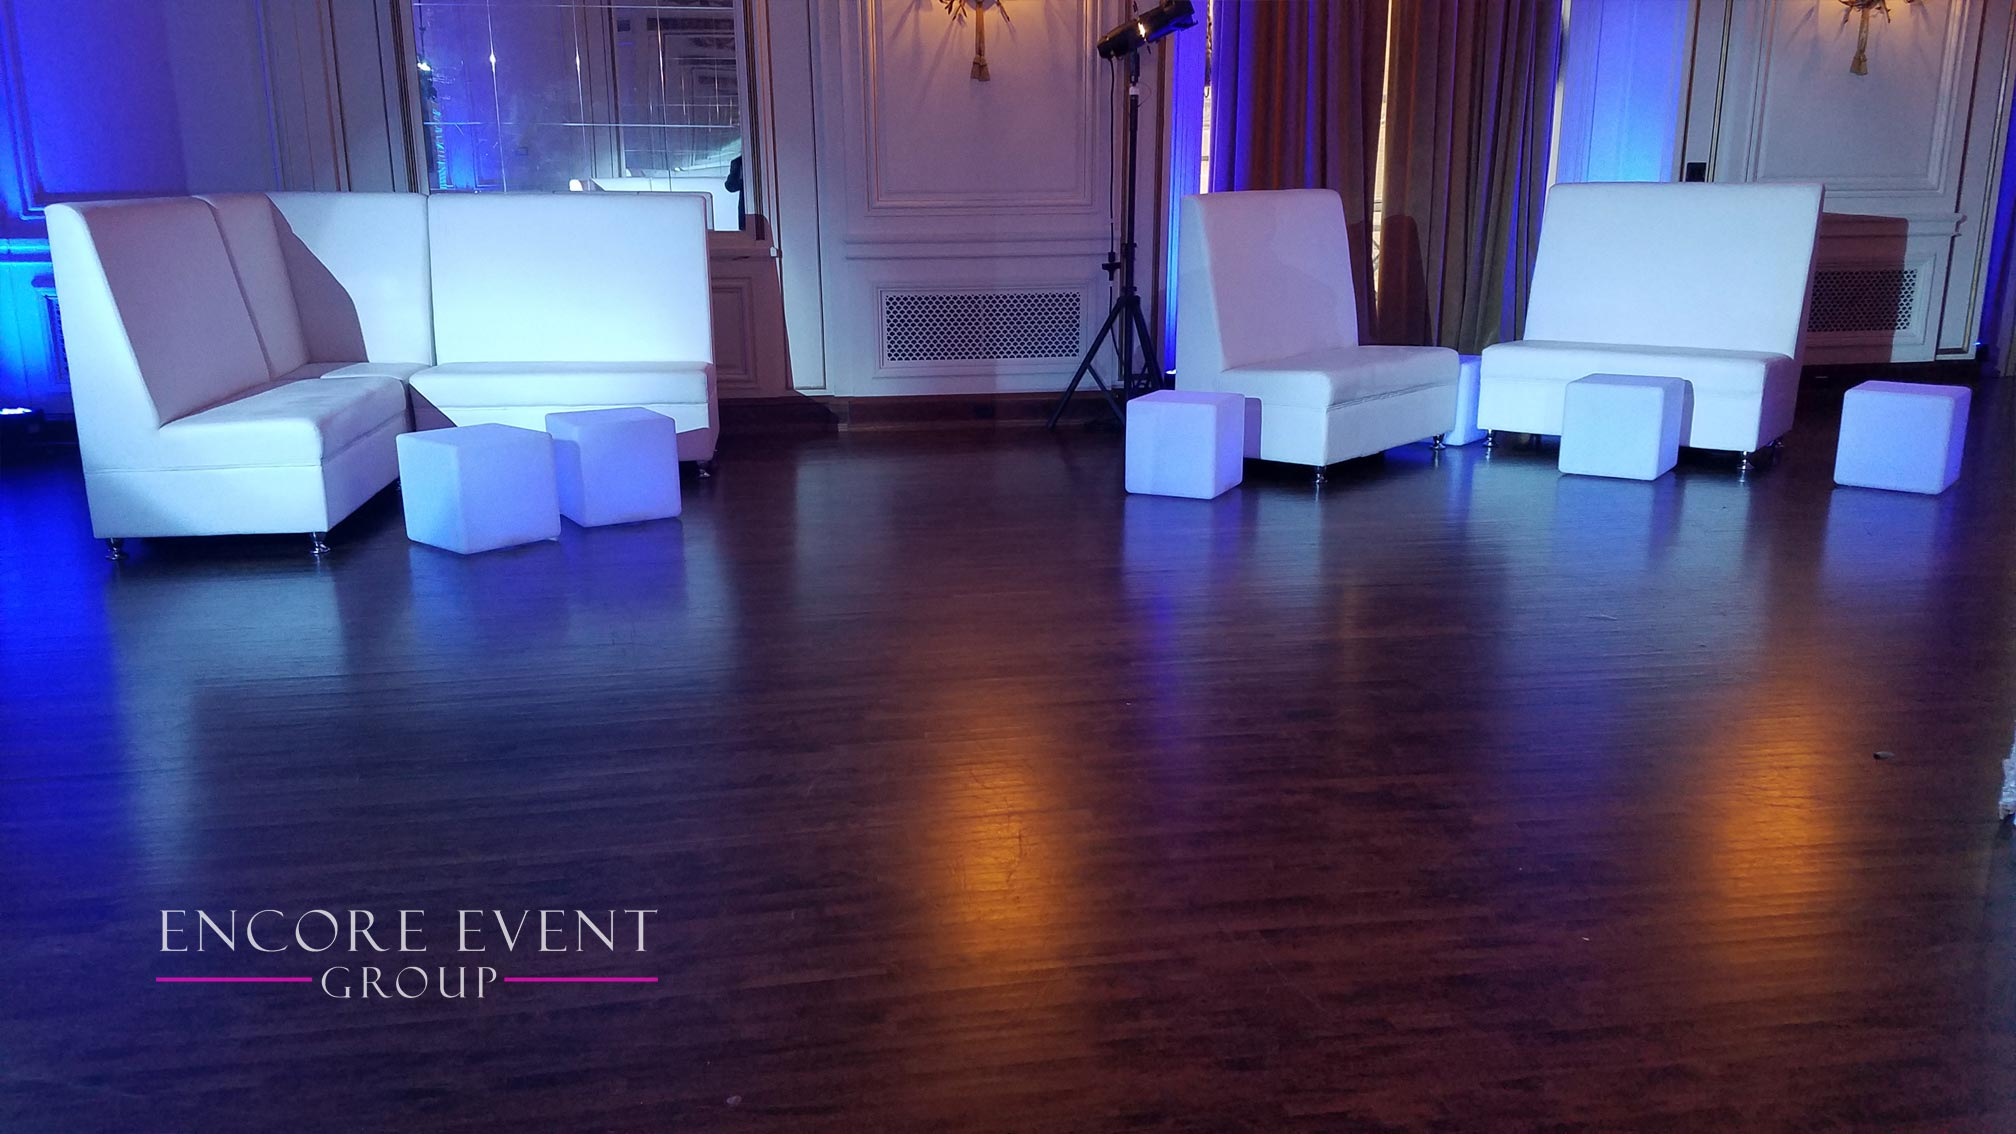 chair rental detroit living room chairs with ottomans michigan white lounge furniture rentals couches thrones